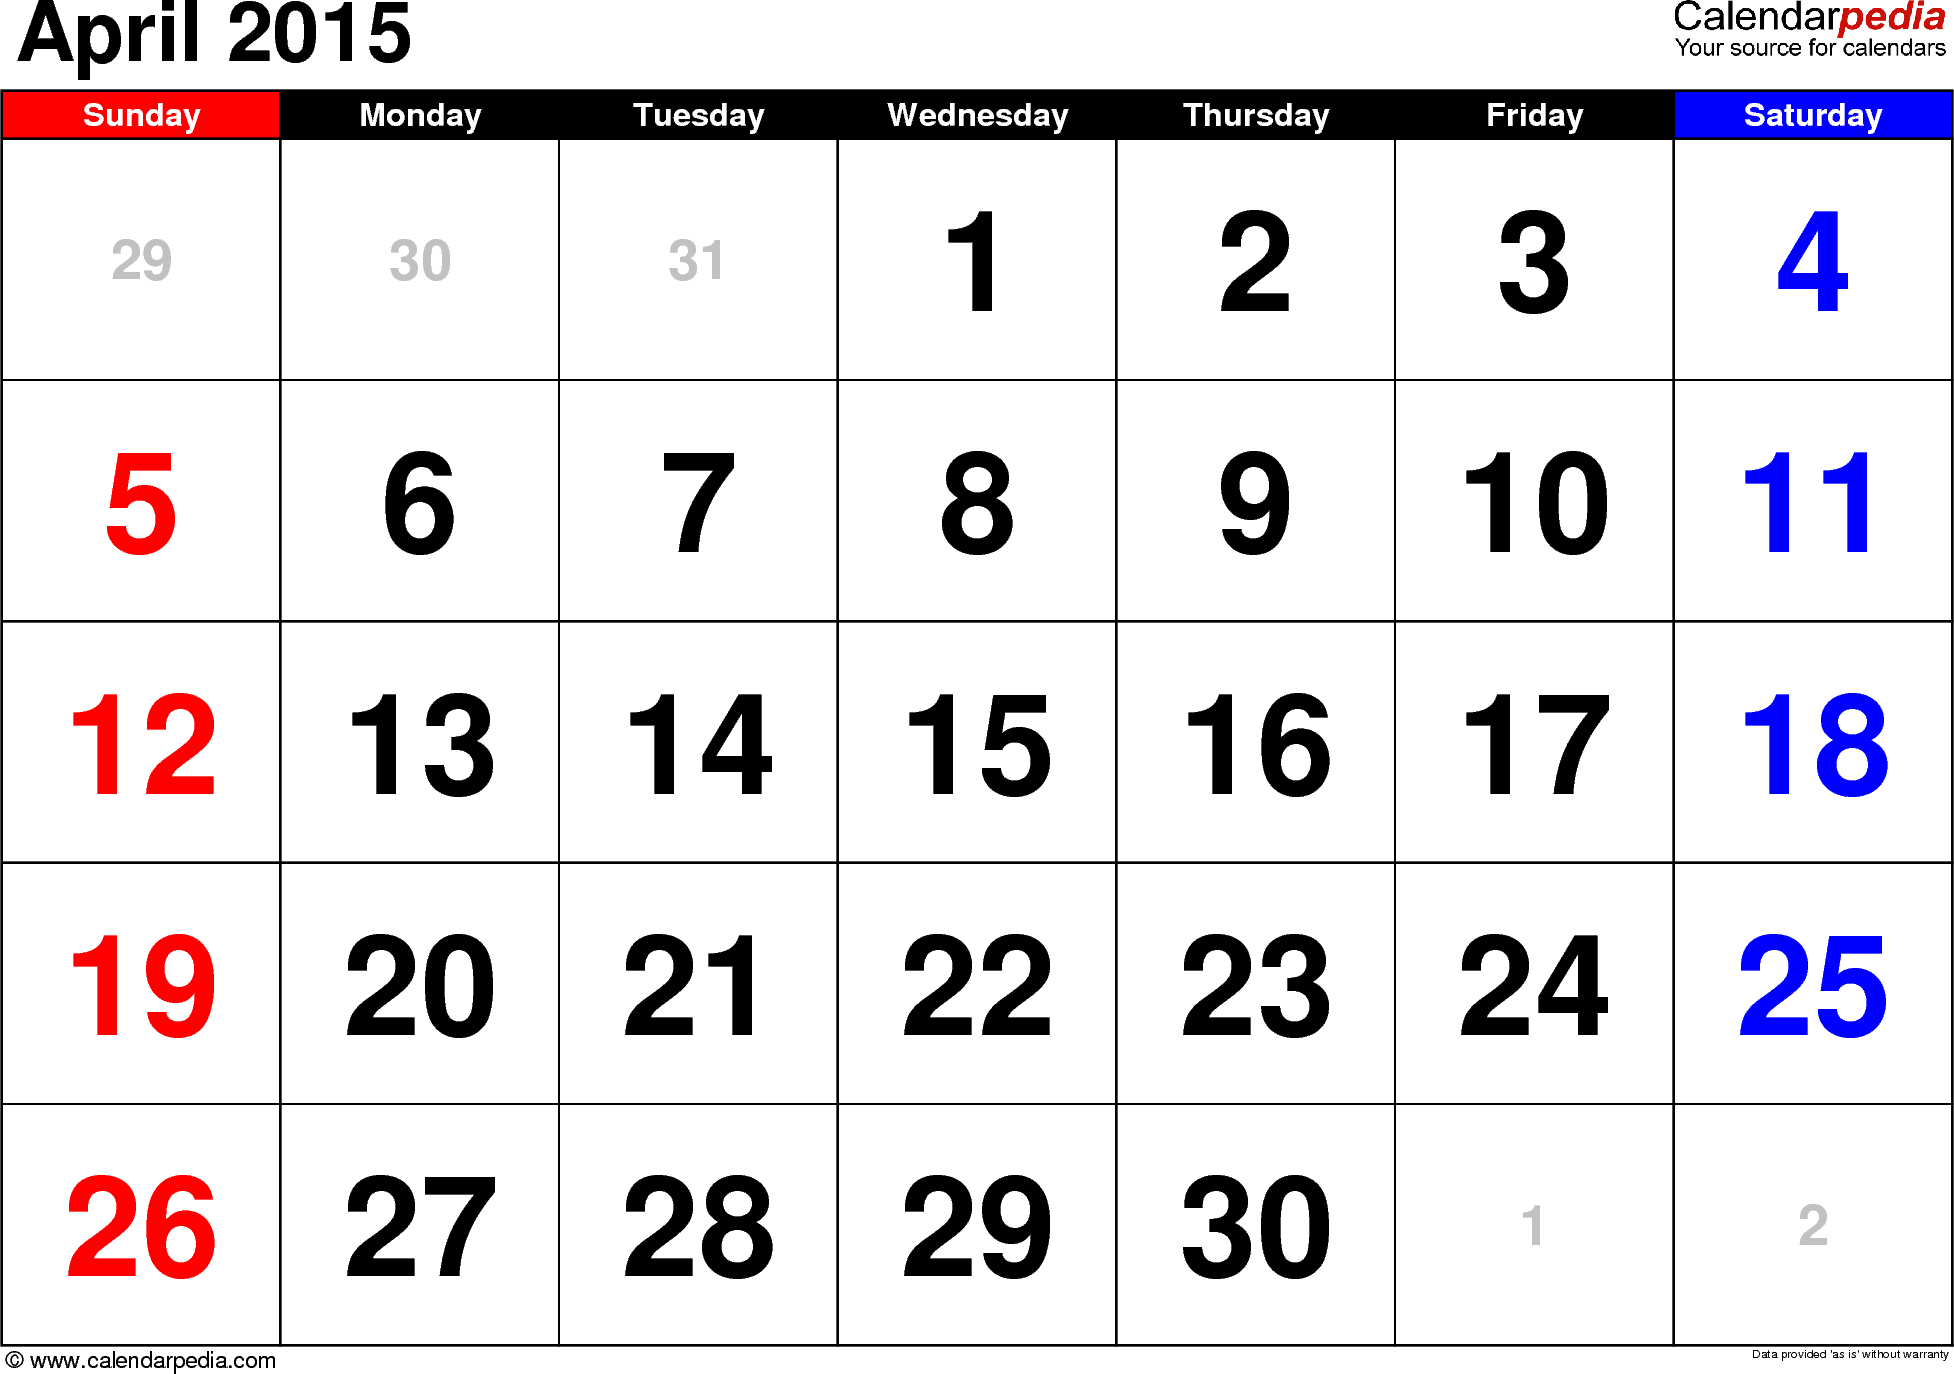 April 2015 calendar, landscape orientation, large numerals, available as printable templates for Word, Excel and PDF